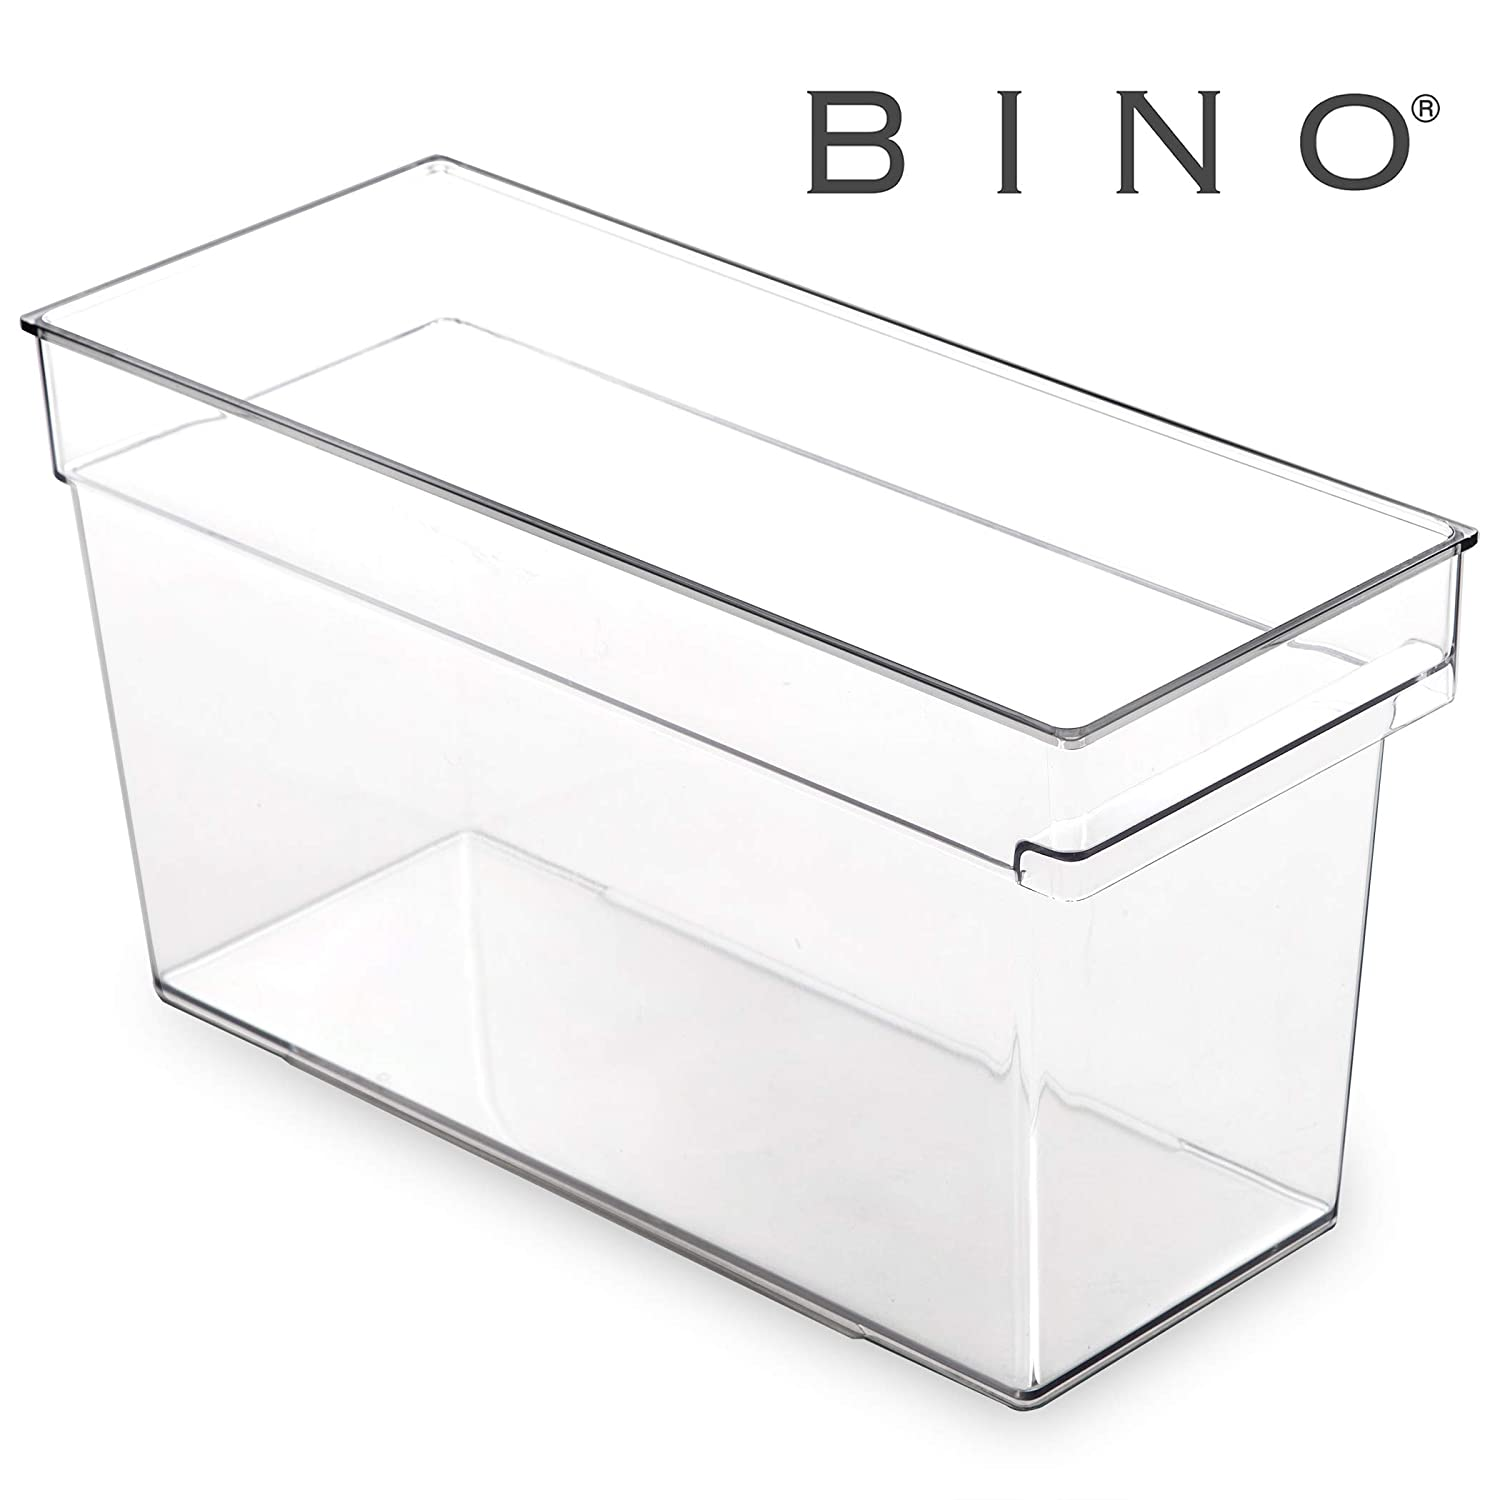 BINO Clear Plastic Storage Bin with Built-In Pull Out Handle - (Deep, Medium) - Storage Bins for Home, Kitchen, and Bath - Refrigerator, Freezer, Cabinet, Closet, Pantry Organization and Storage